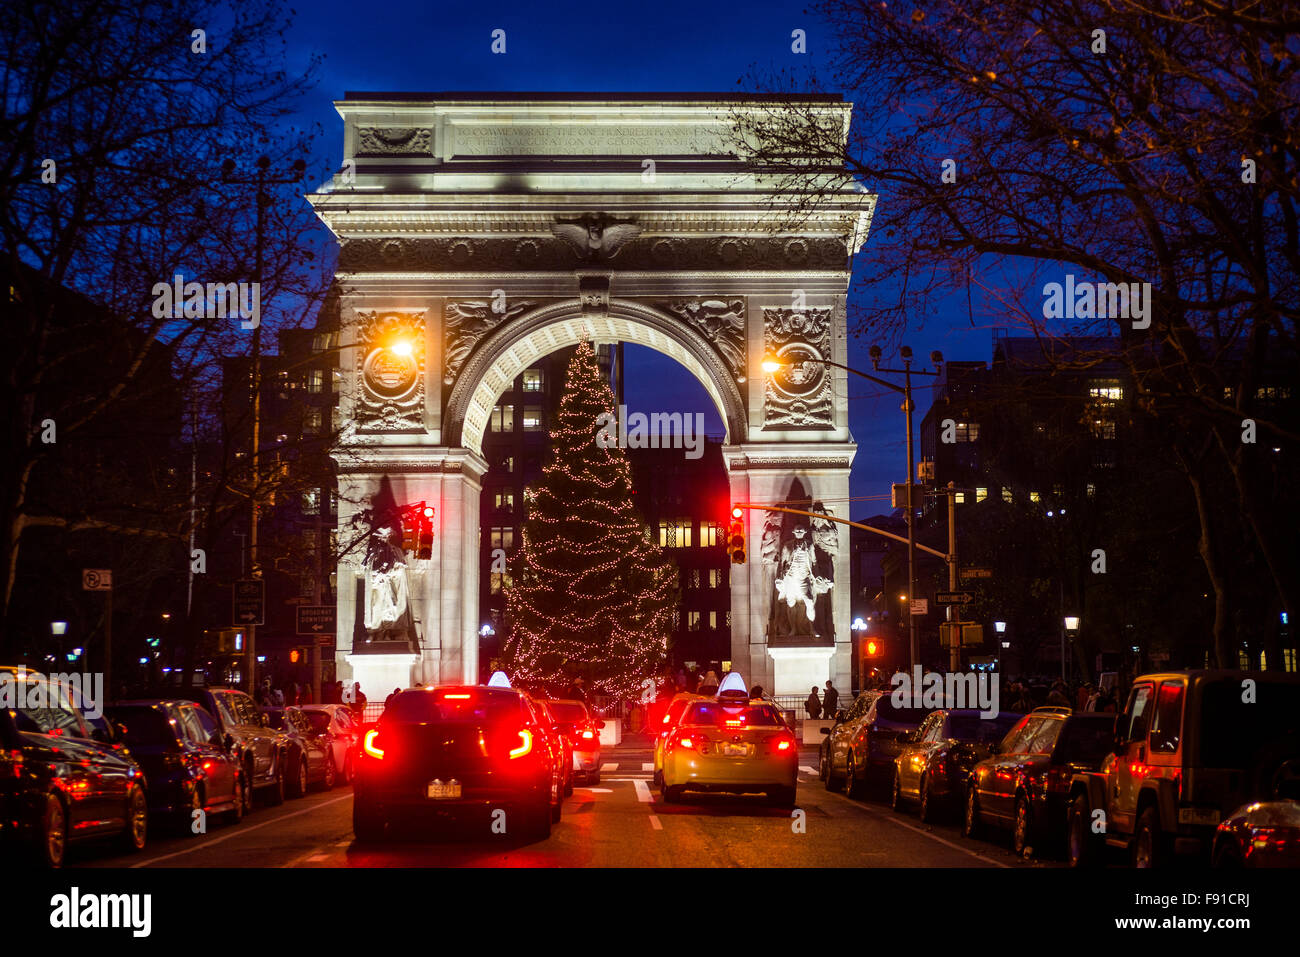 New York, NY - 12 December 2015 - Christmas tree under the Washington Square Arch in Greenwich Village ©Stacy - Stock Image